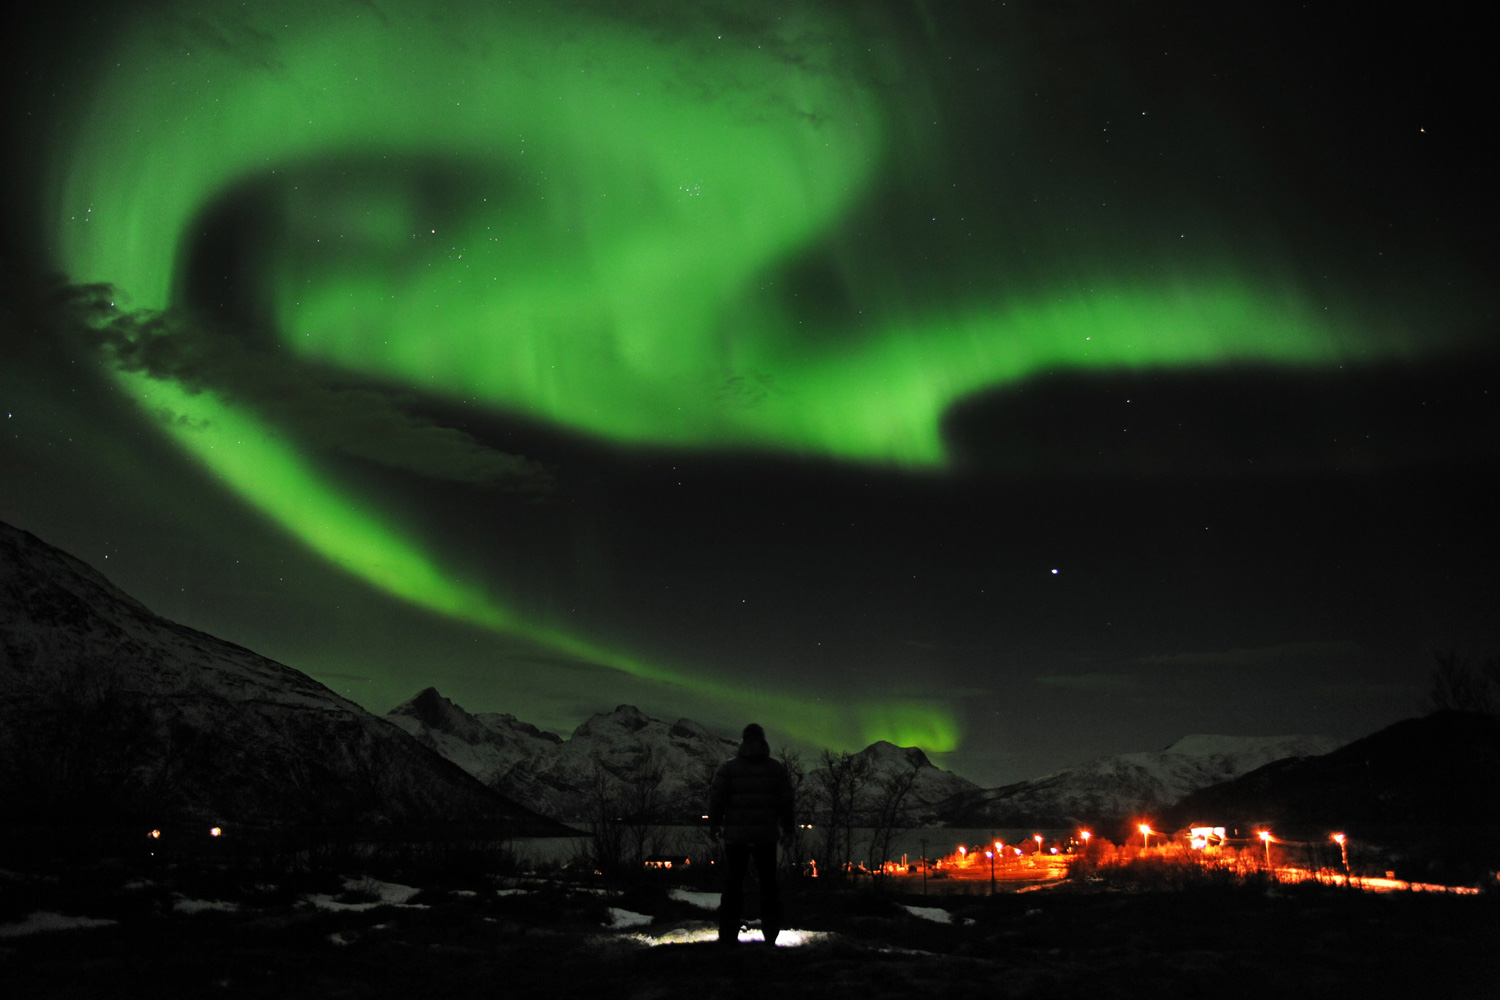 January 24, 2012. Northern lights as seen from the Skulsfjord outside Troms, Norway.